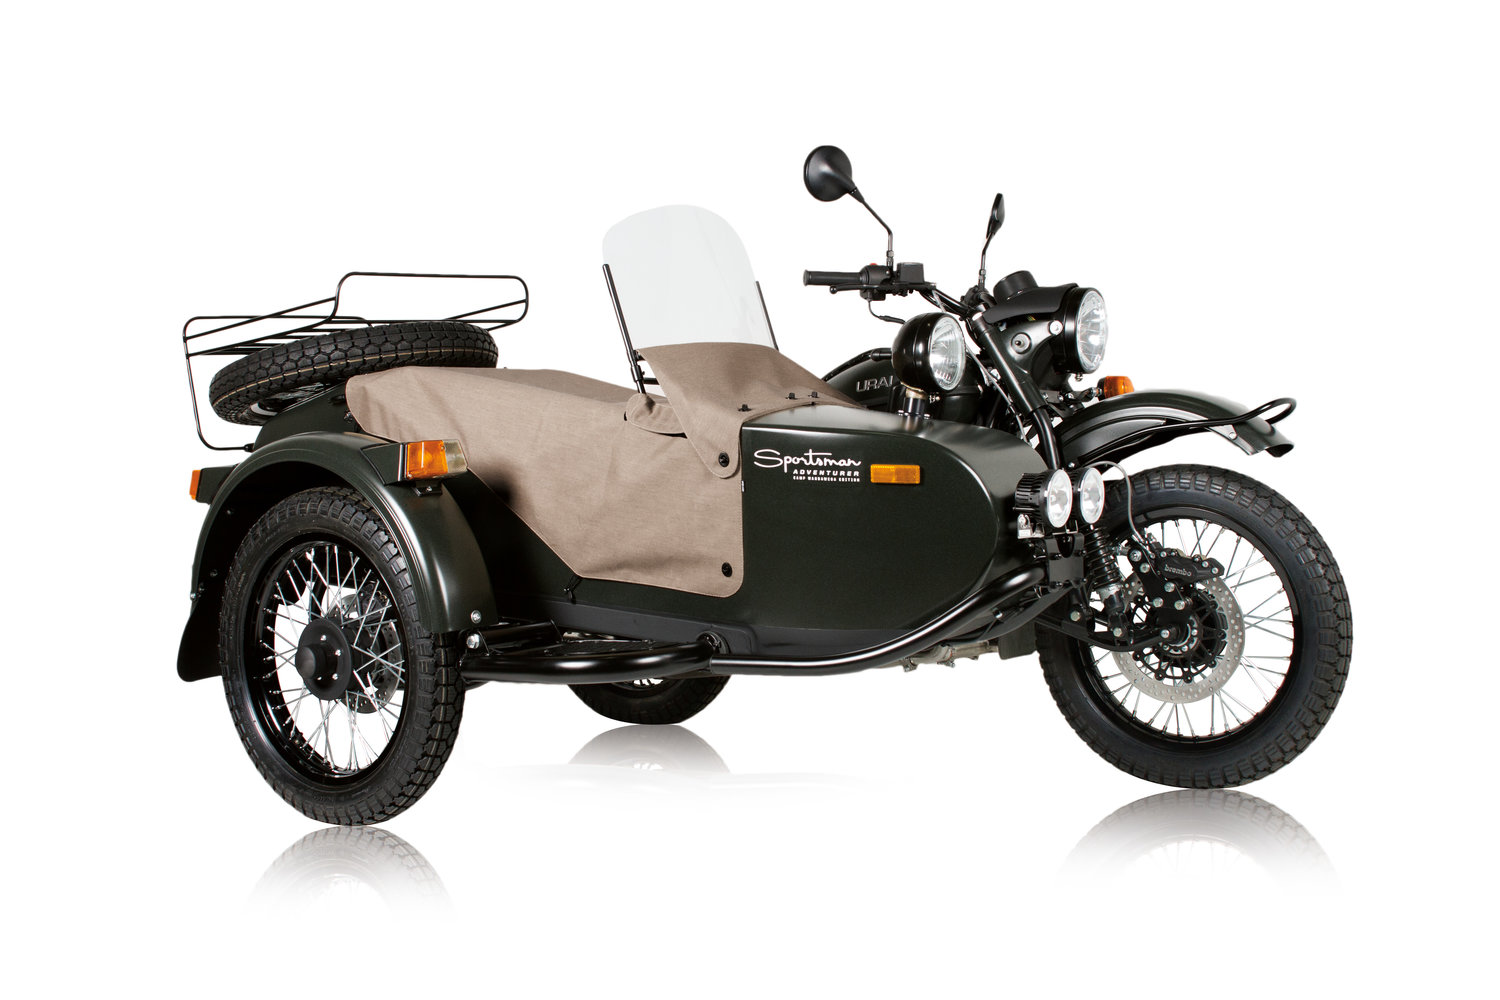 2017 Ural Motorcycles Sportsman Adventurer in Ozark, Missouri